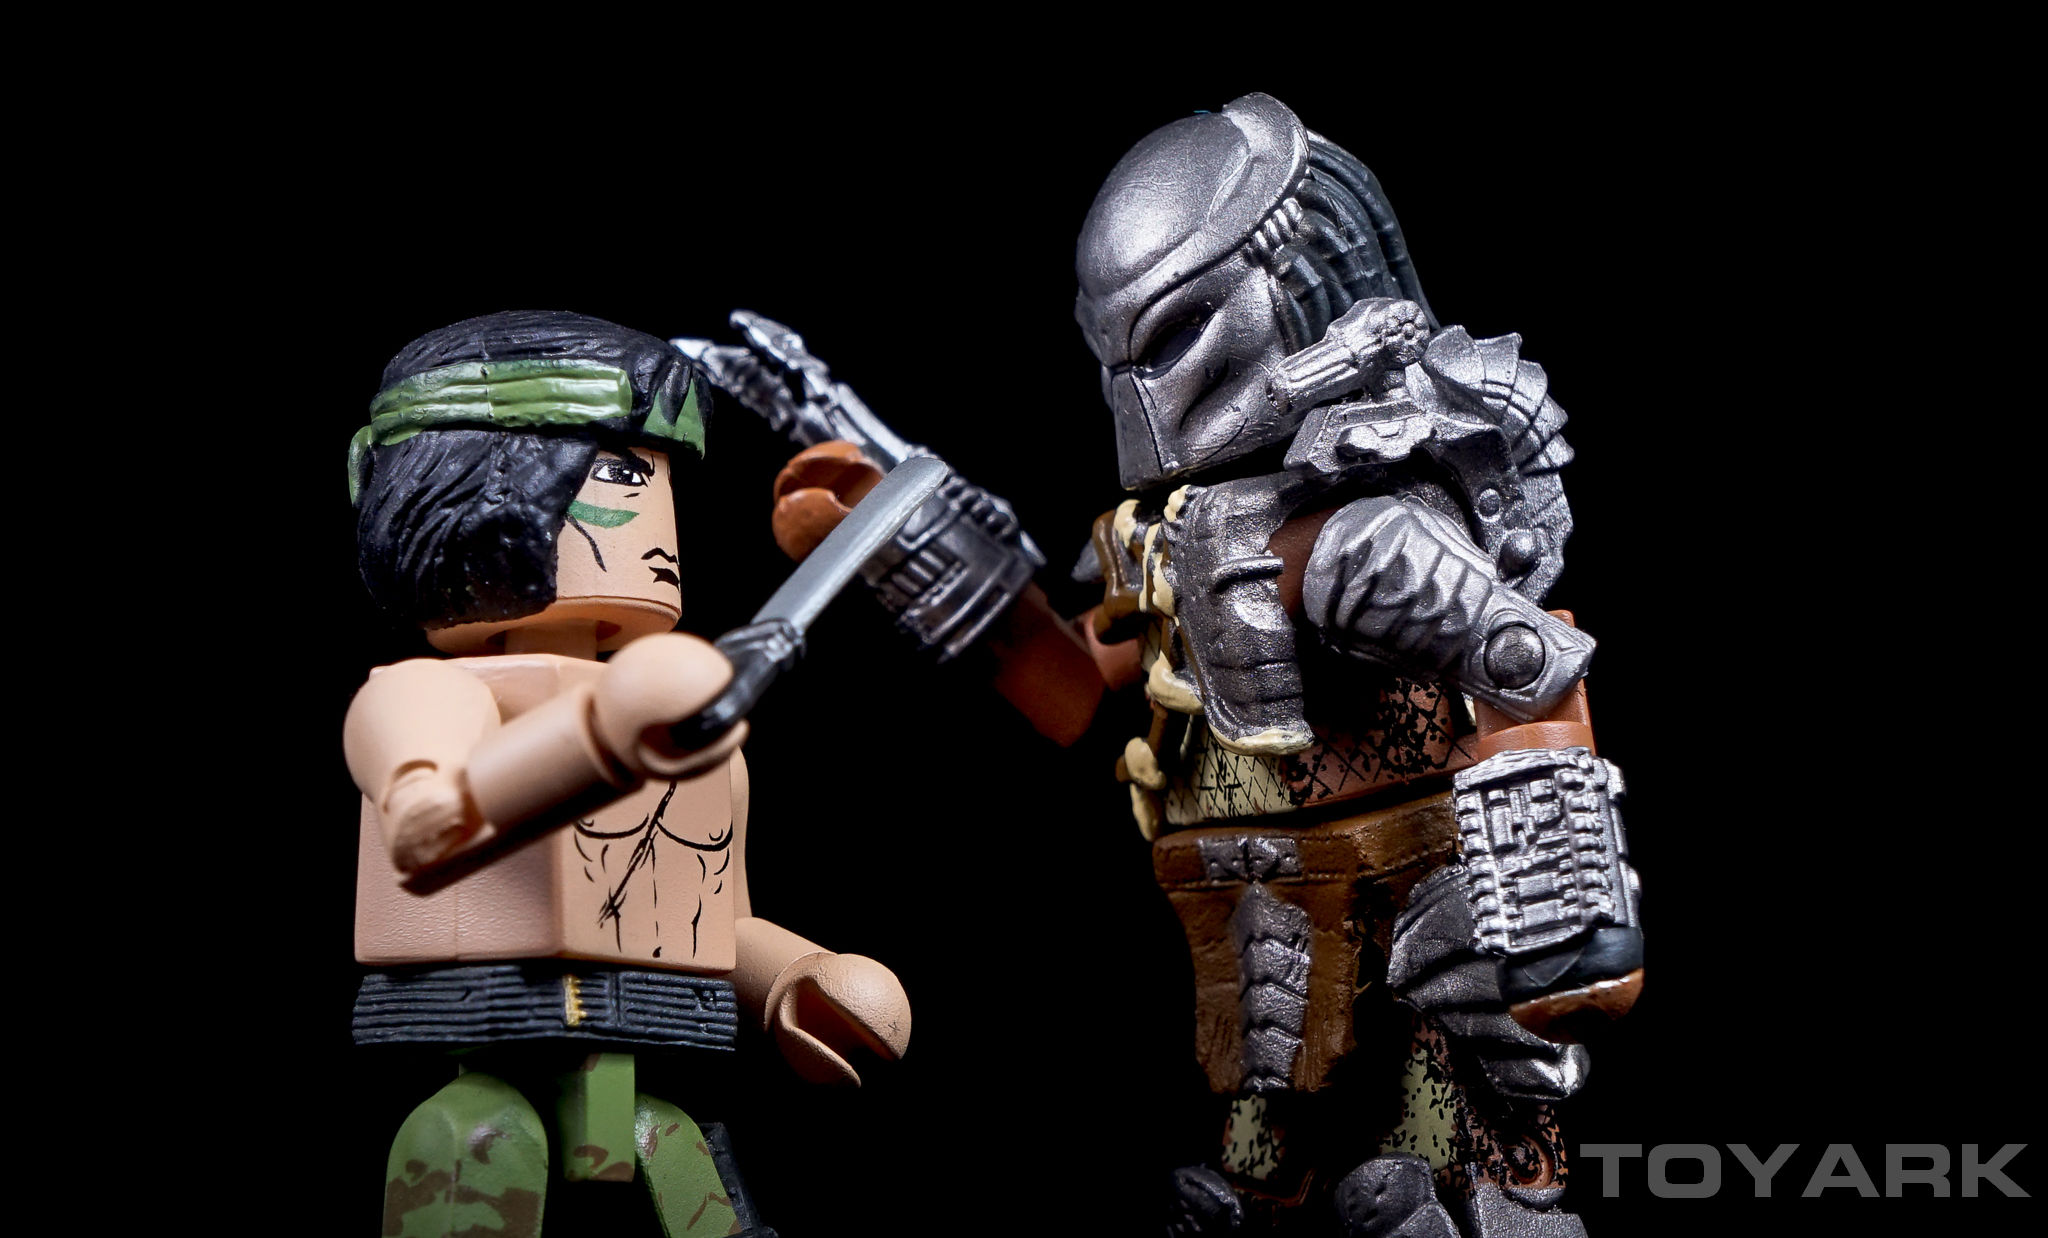 http://news.toyark.com/wp-content/uploads/sites/4/2016/04/Predator-Minimates-Blind-Bagged-068.jpg